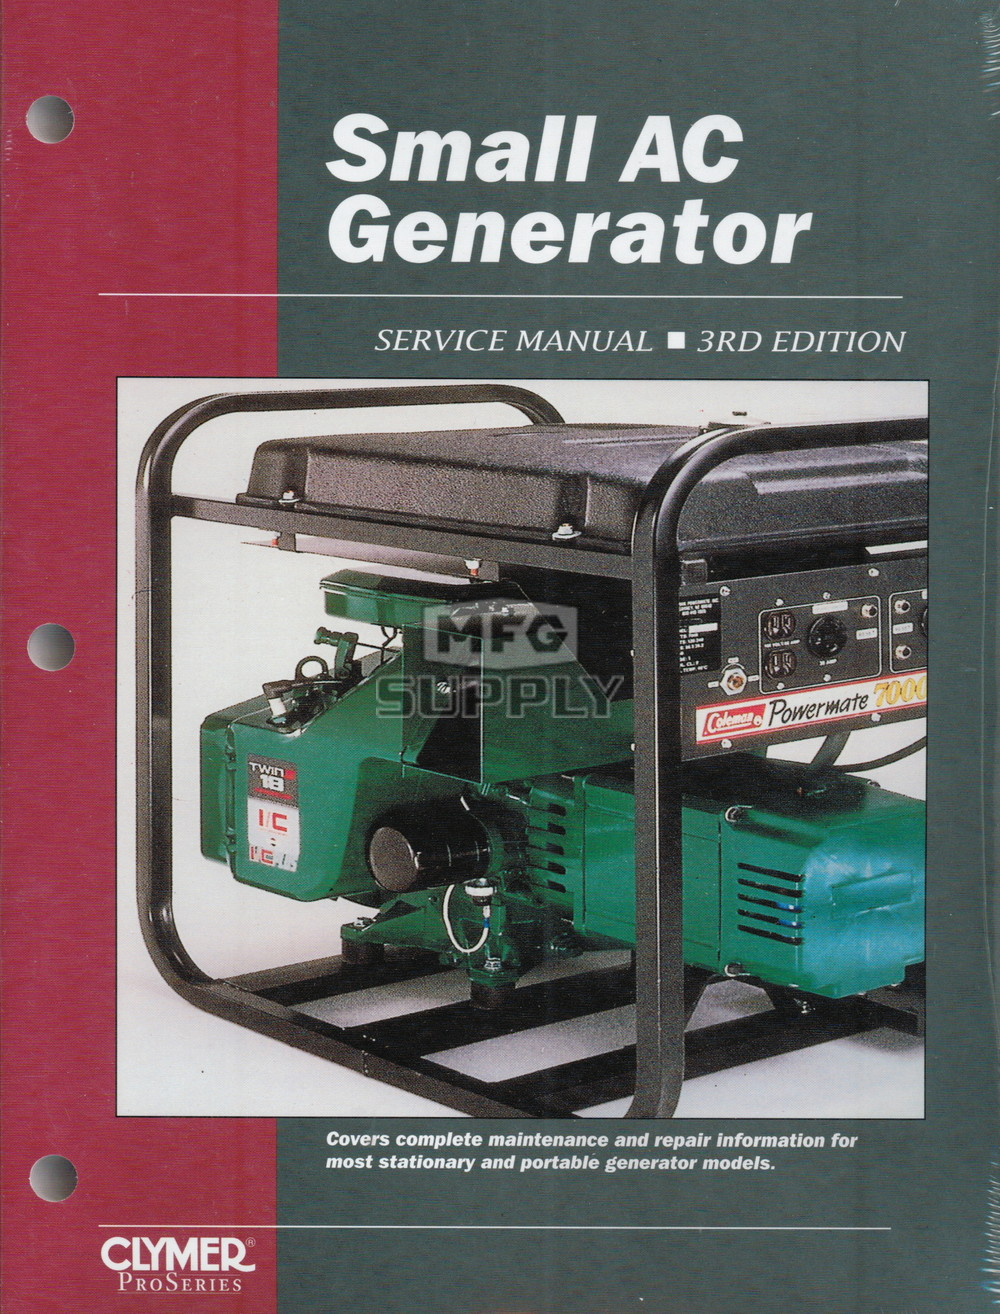 Blower Motor Has No Power Part Is New As Well As The Manual Guide